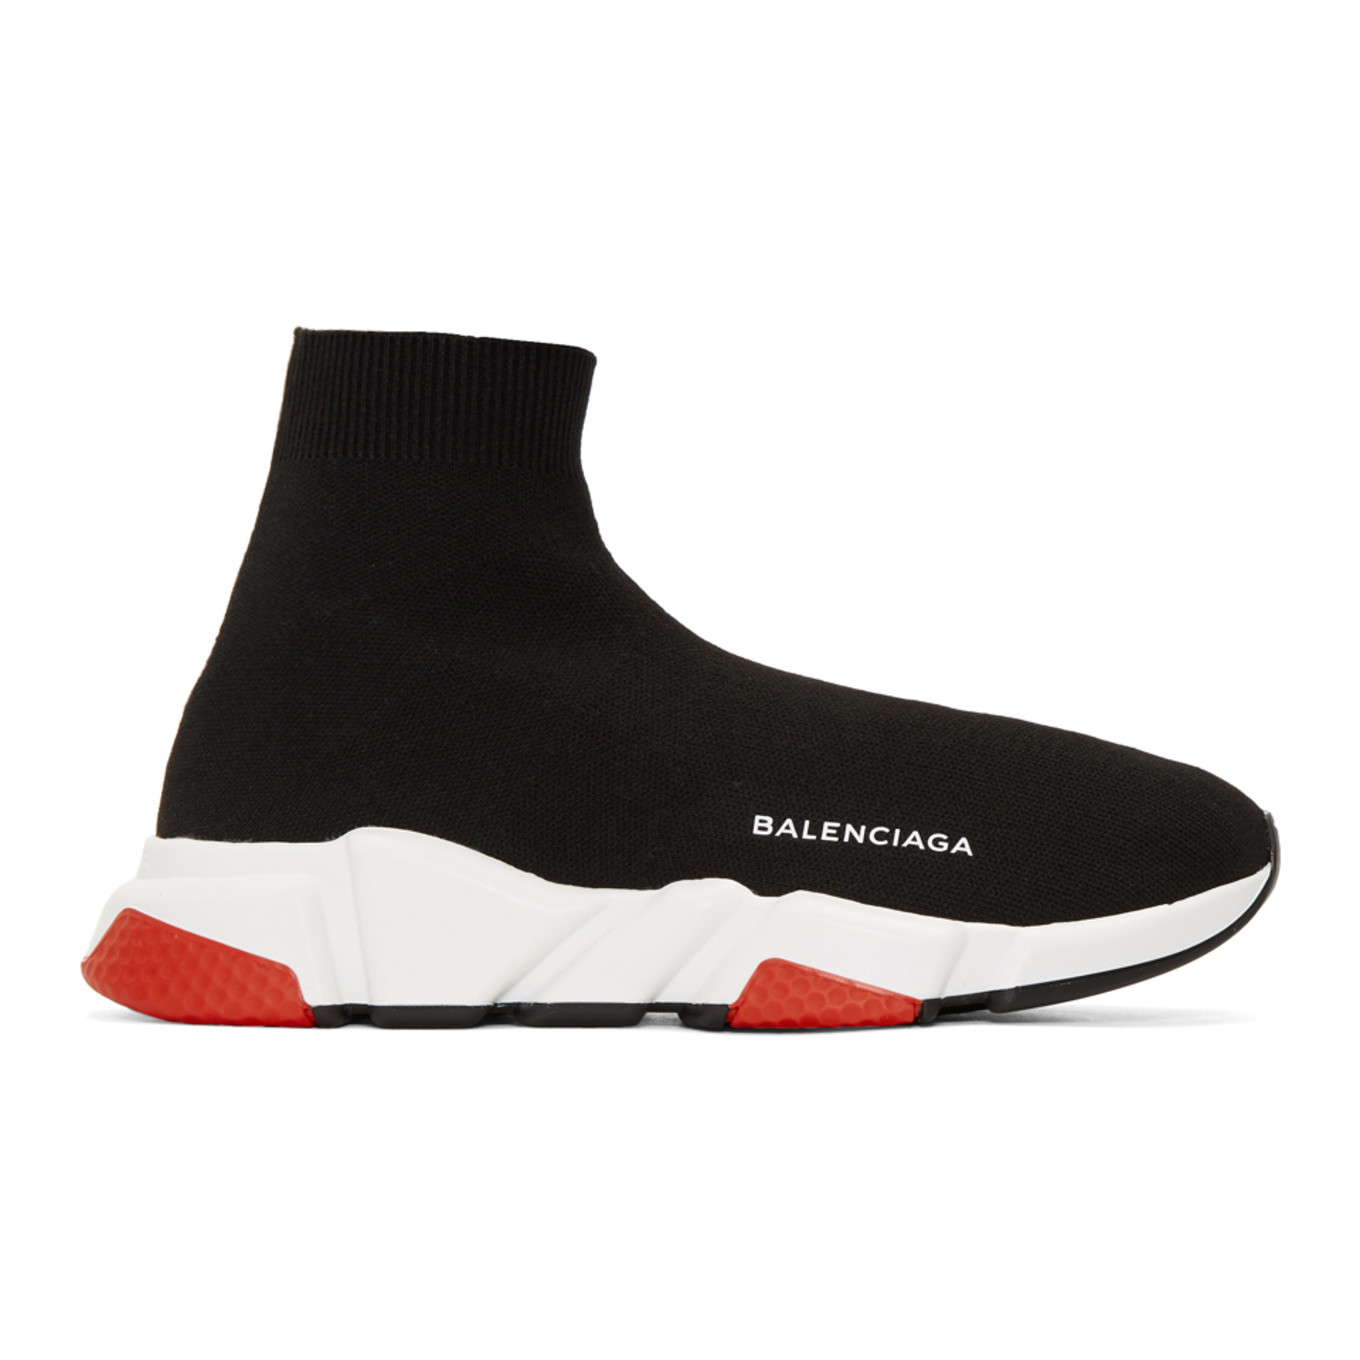 Black and Red Speed Sneakers Balenciaga jNsZ8IH